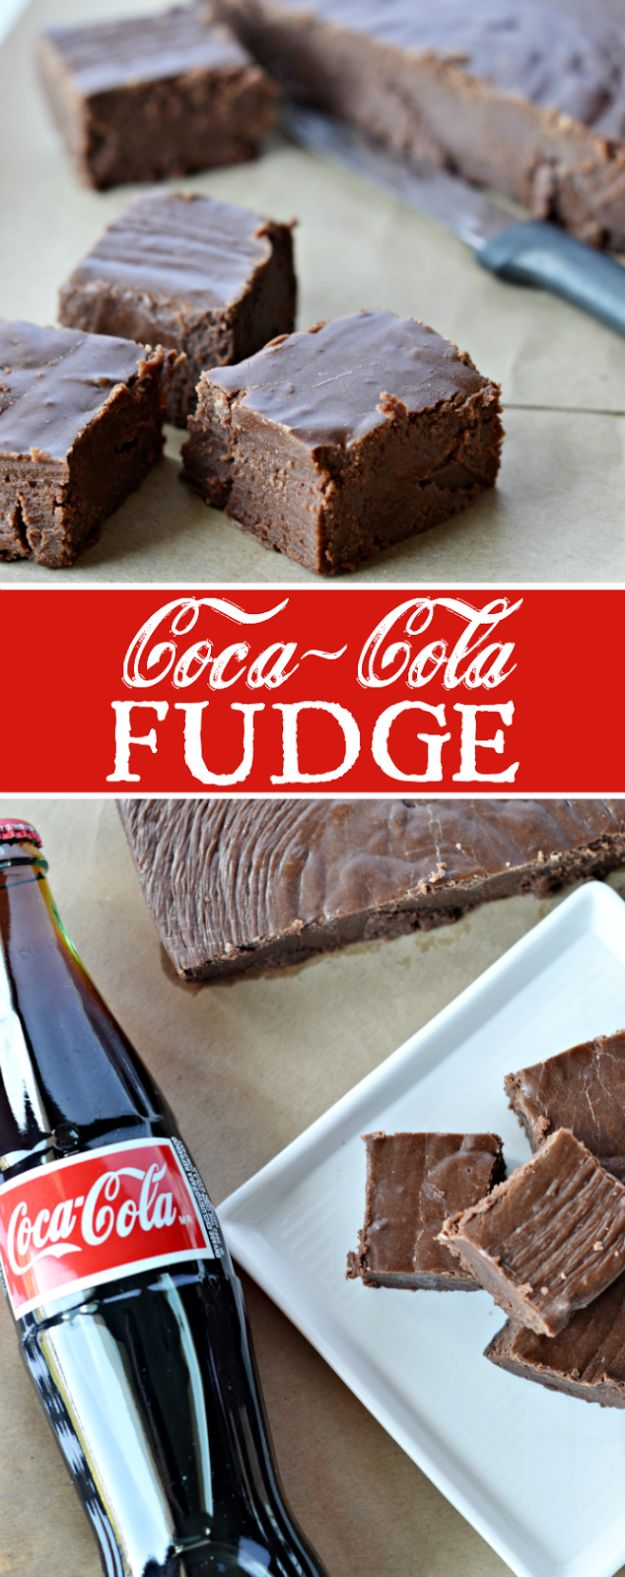 Best Coca Cola Recipes - Coca Cola Fudge - Make Awesome Coke Chicken, Coca Cola Cake, Meatballs, Sodas, Drinks, Sweets, Dinners, Meat, Slow Cooker and Recipe Ideas #cocacola #recipes #desserts